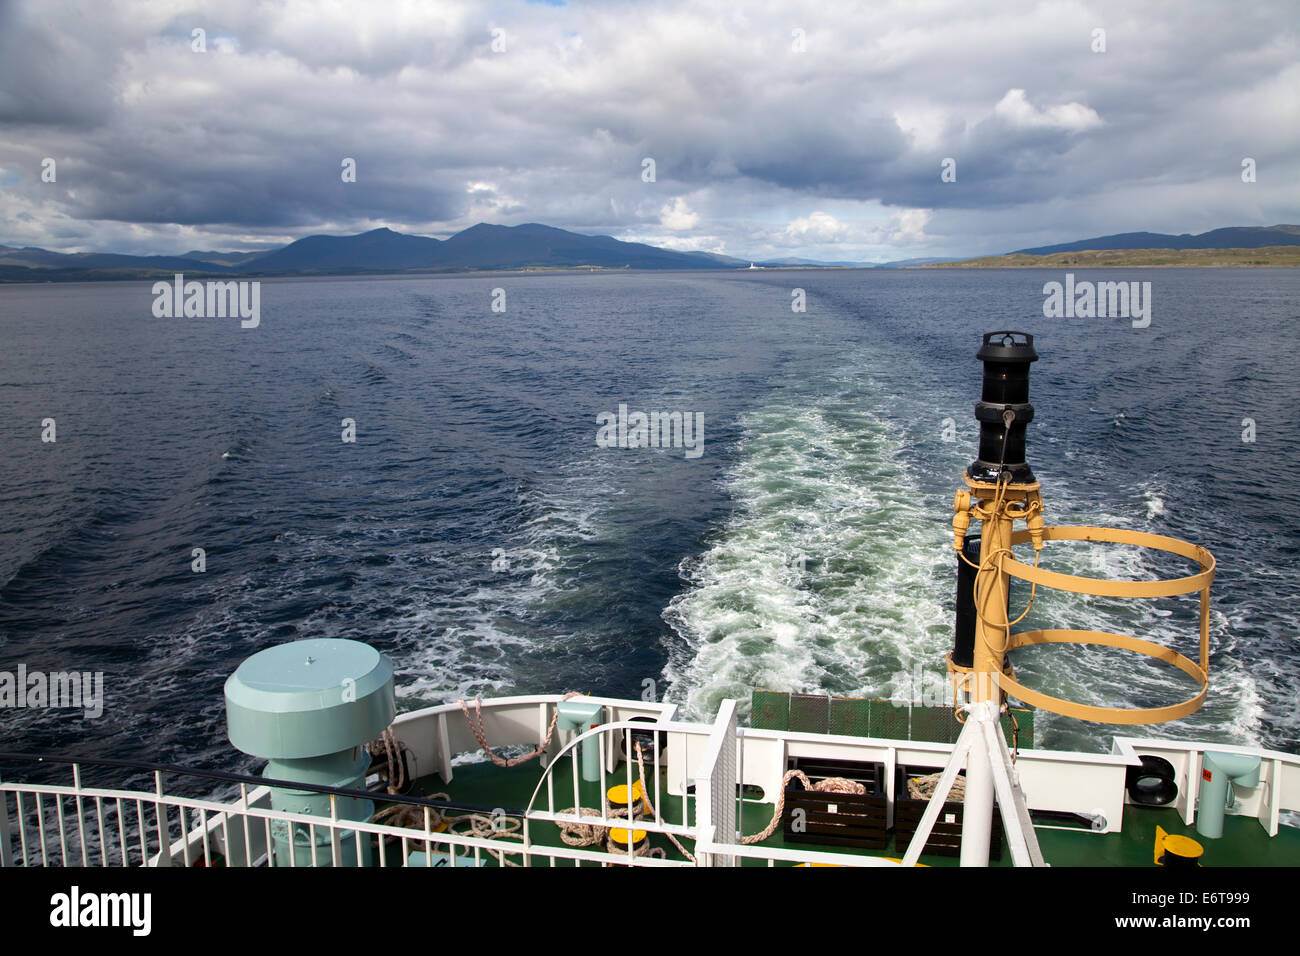 View from the ferry crossing the Sound of Mull from Craignure to Oban in Scotland - Stock Image